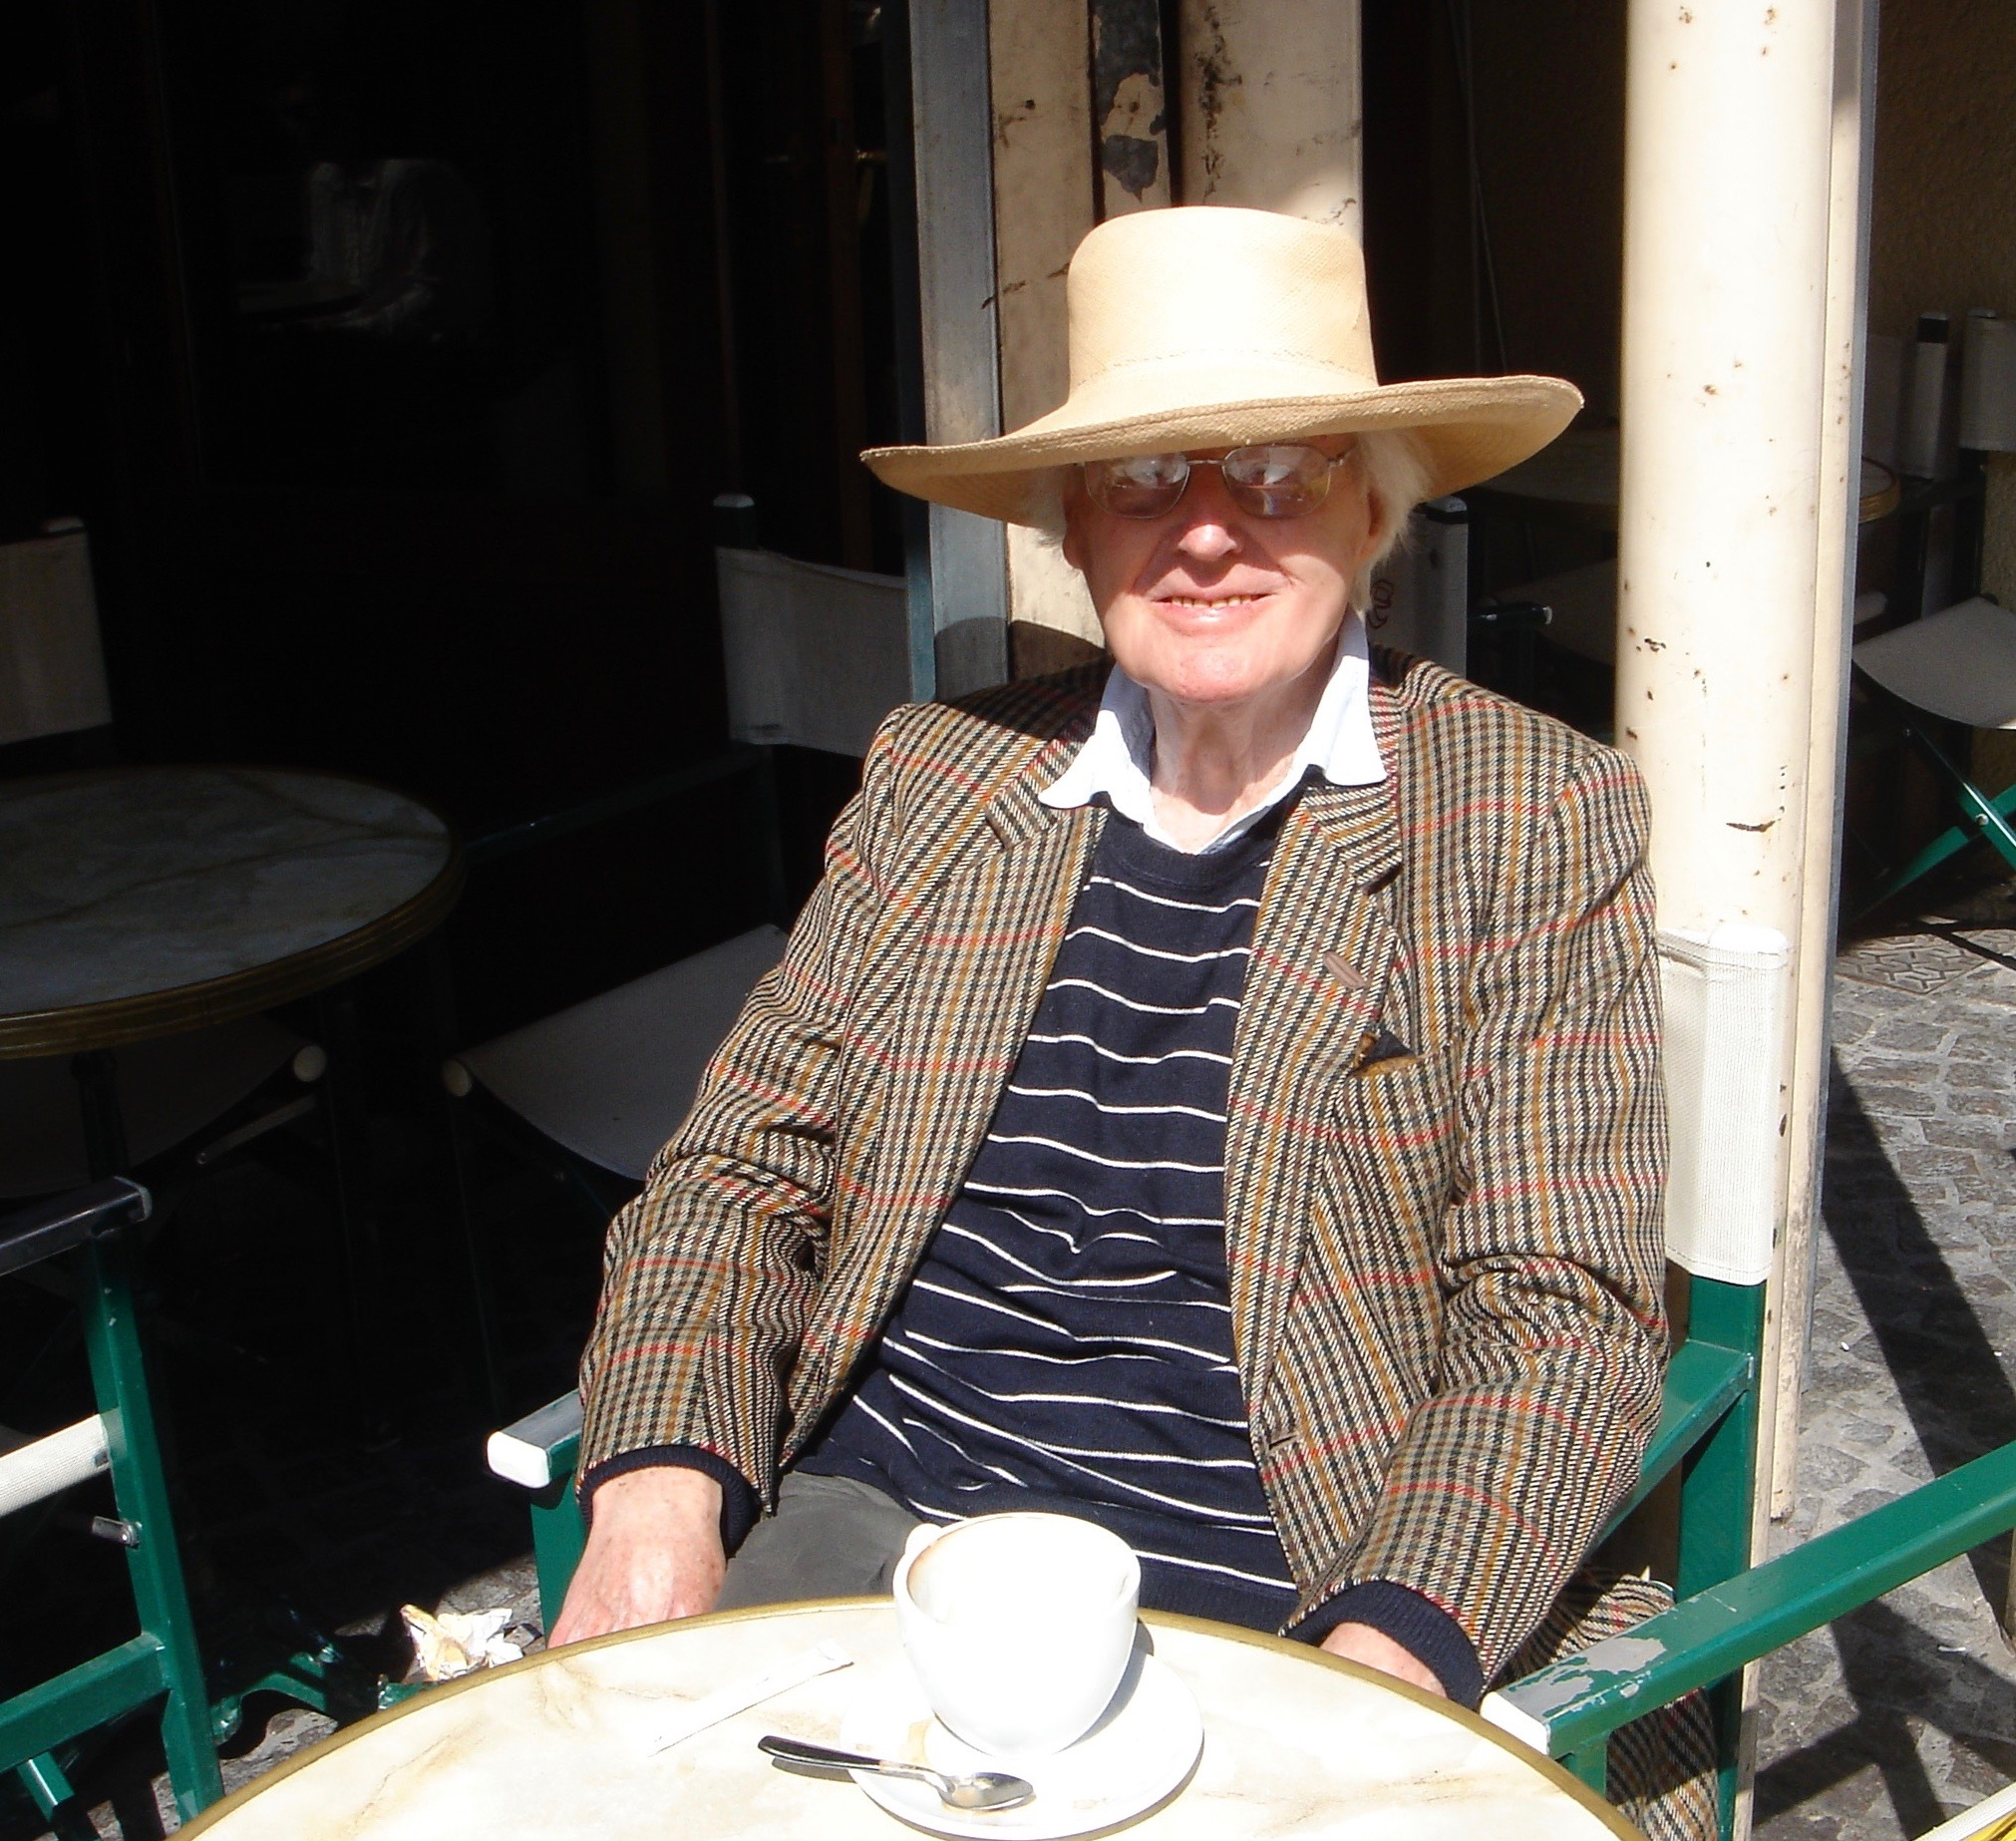 MY FATHER IN FRANCE, IN HIS VACATION CLOTHES